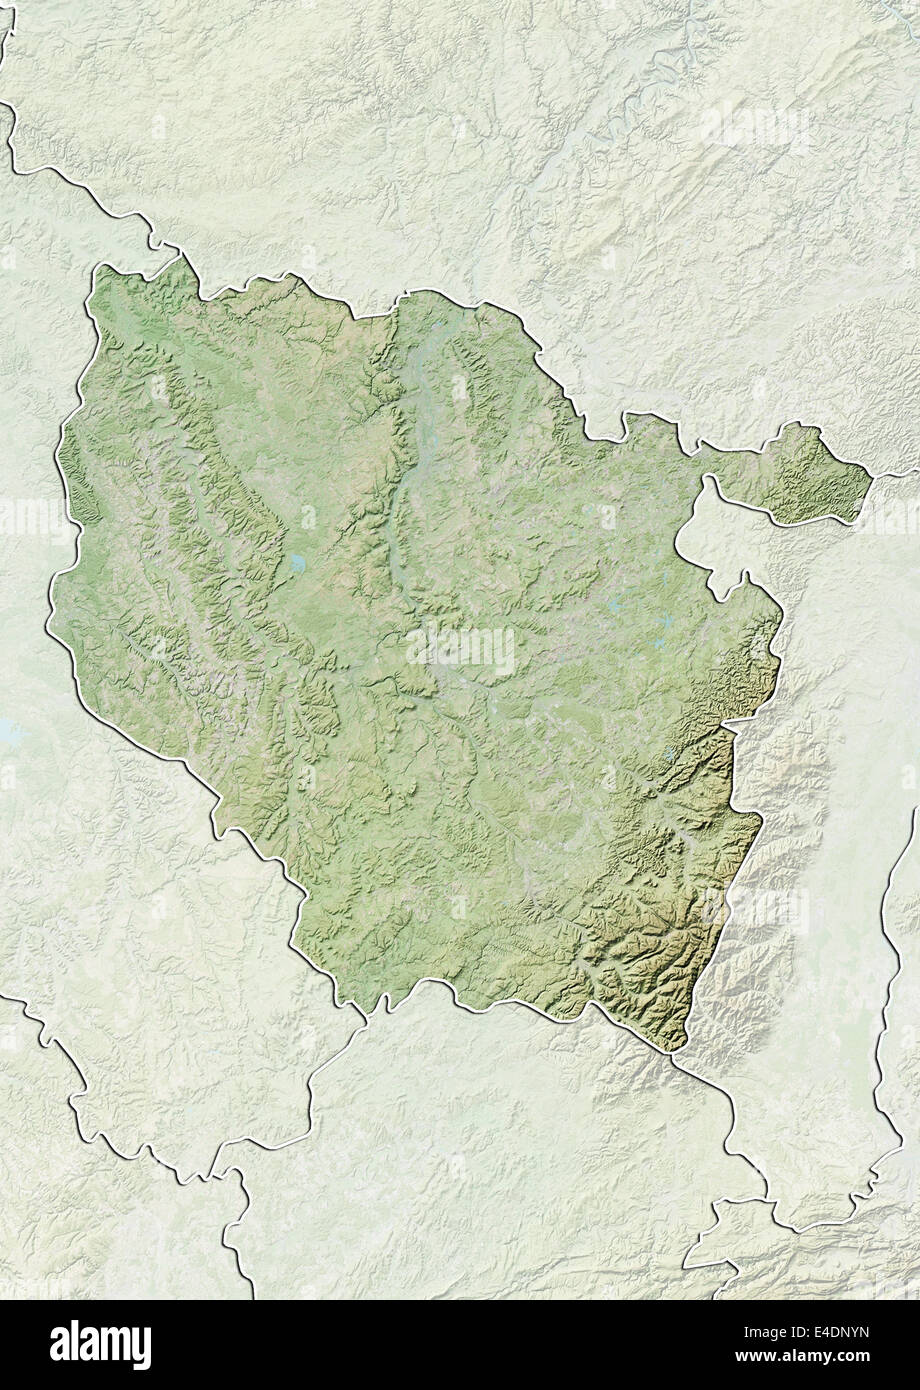 Region Of Lorraine France Relief Map Stock Photo 71602713 Alamy